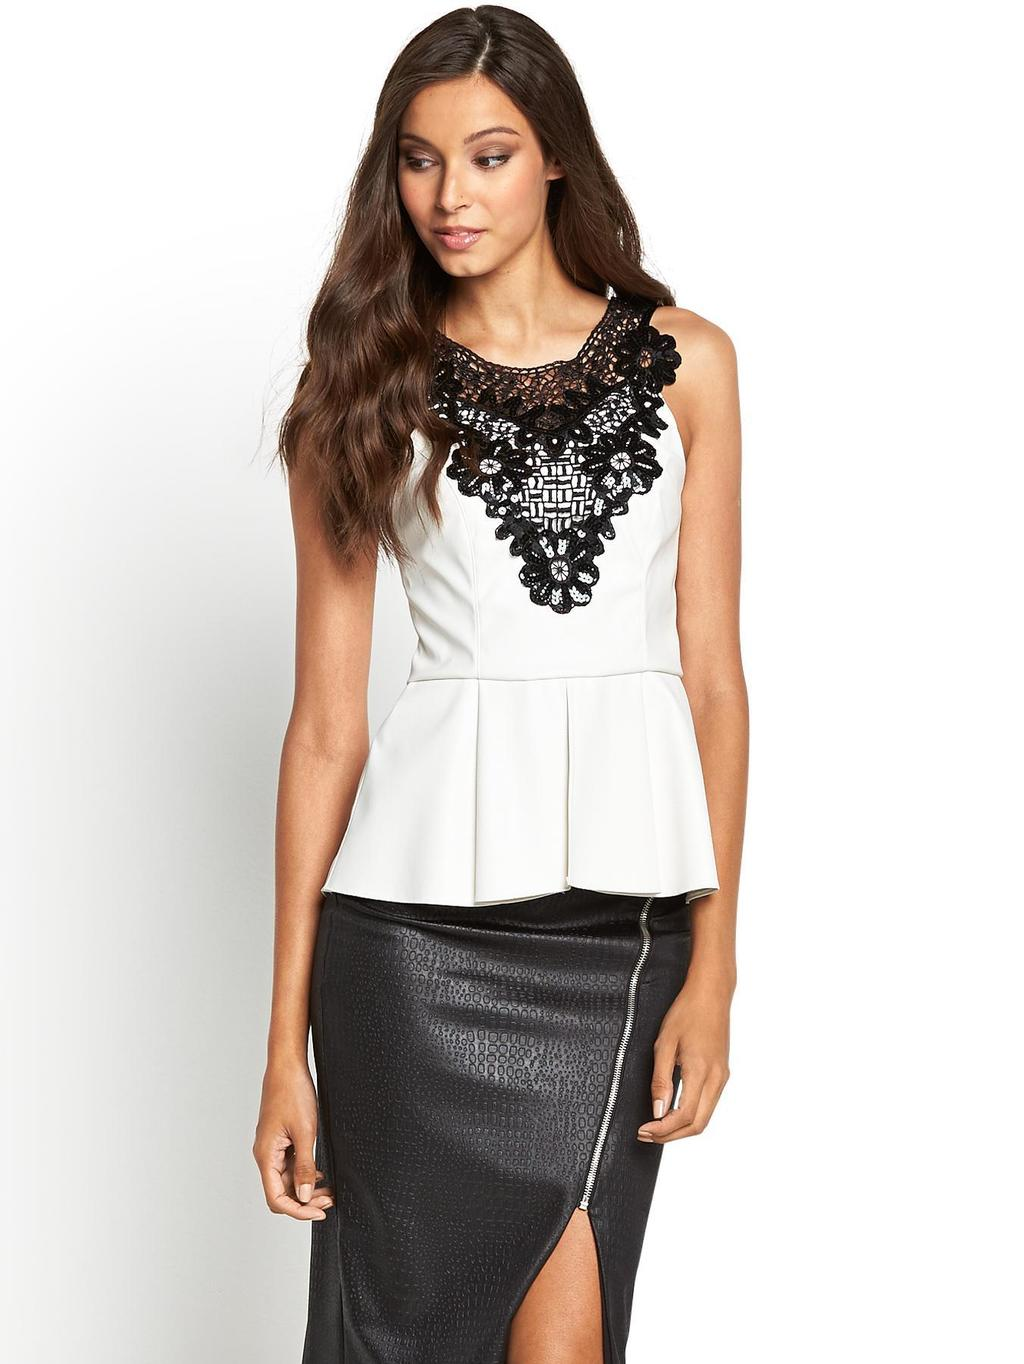 Michelle Keegan Cornelli Pu Peplum Top, Black - neckline: round neck; pattern: plain; sleeve style: sleeveless; waist detail: peplum waist detail; predominant colour: white; secondary colour: black; occasions: evening, work, occasion; length: standard; style: top; fit: tailored/fitted; sleeve length: sleeveless; texture group: leather; pattern type: fabric; pattern size: light/subtle; fibres: pvc/polyurethene - 100%; season: s/s 2014; trends: monochrome; embellishment: contrast fabric; embellishment location: bust, shoulder